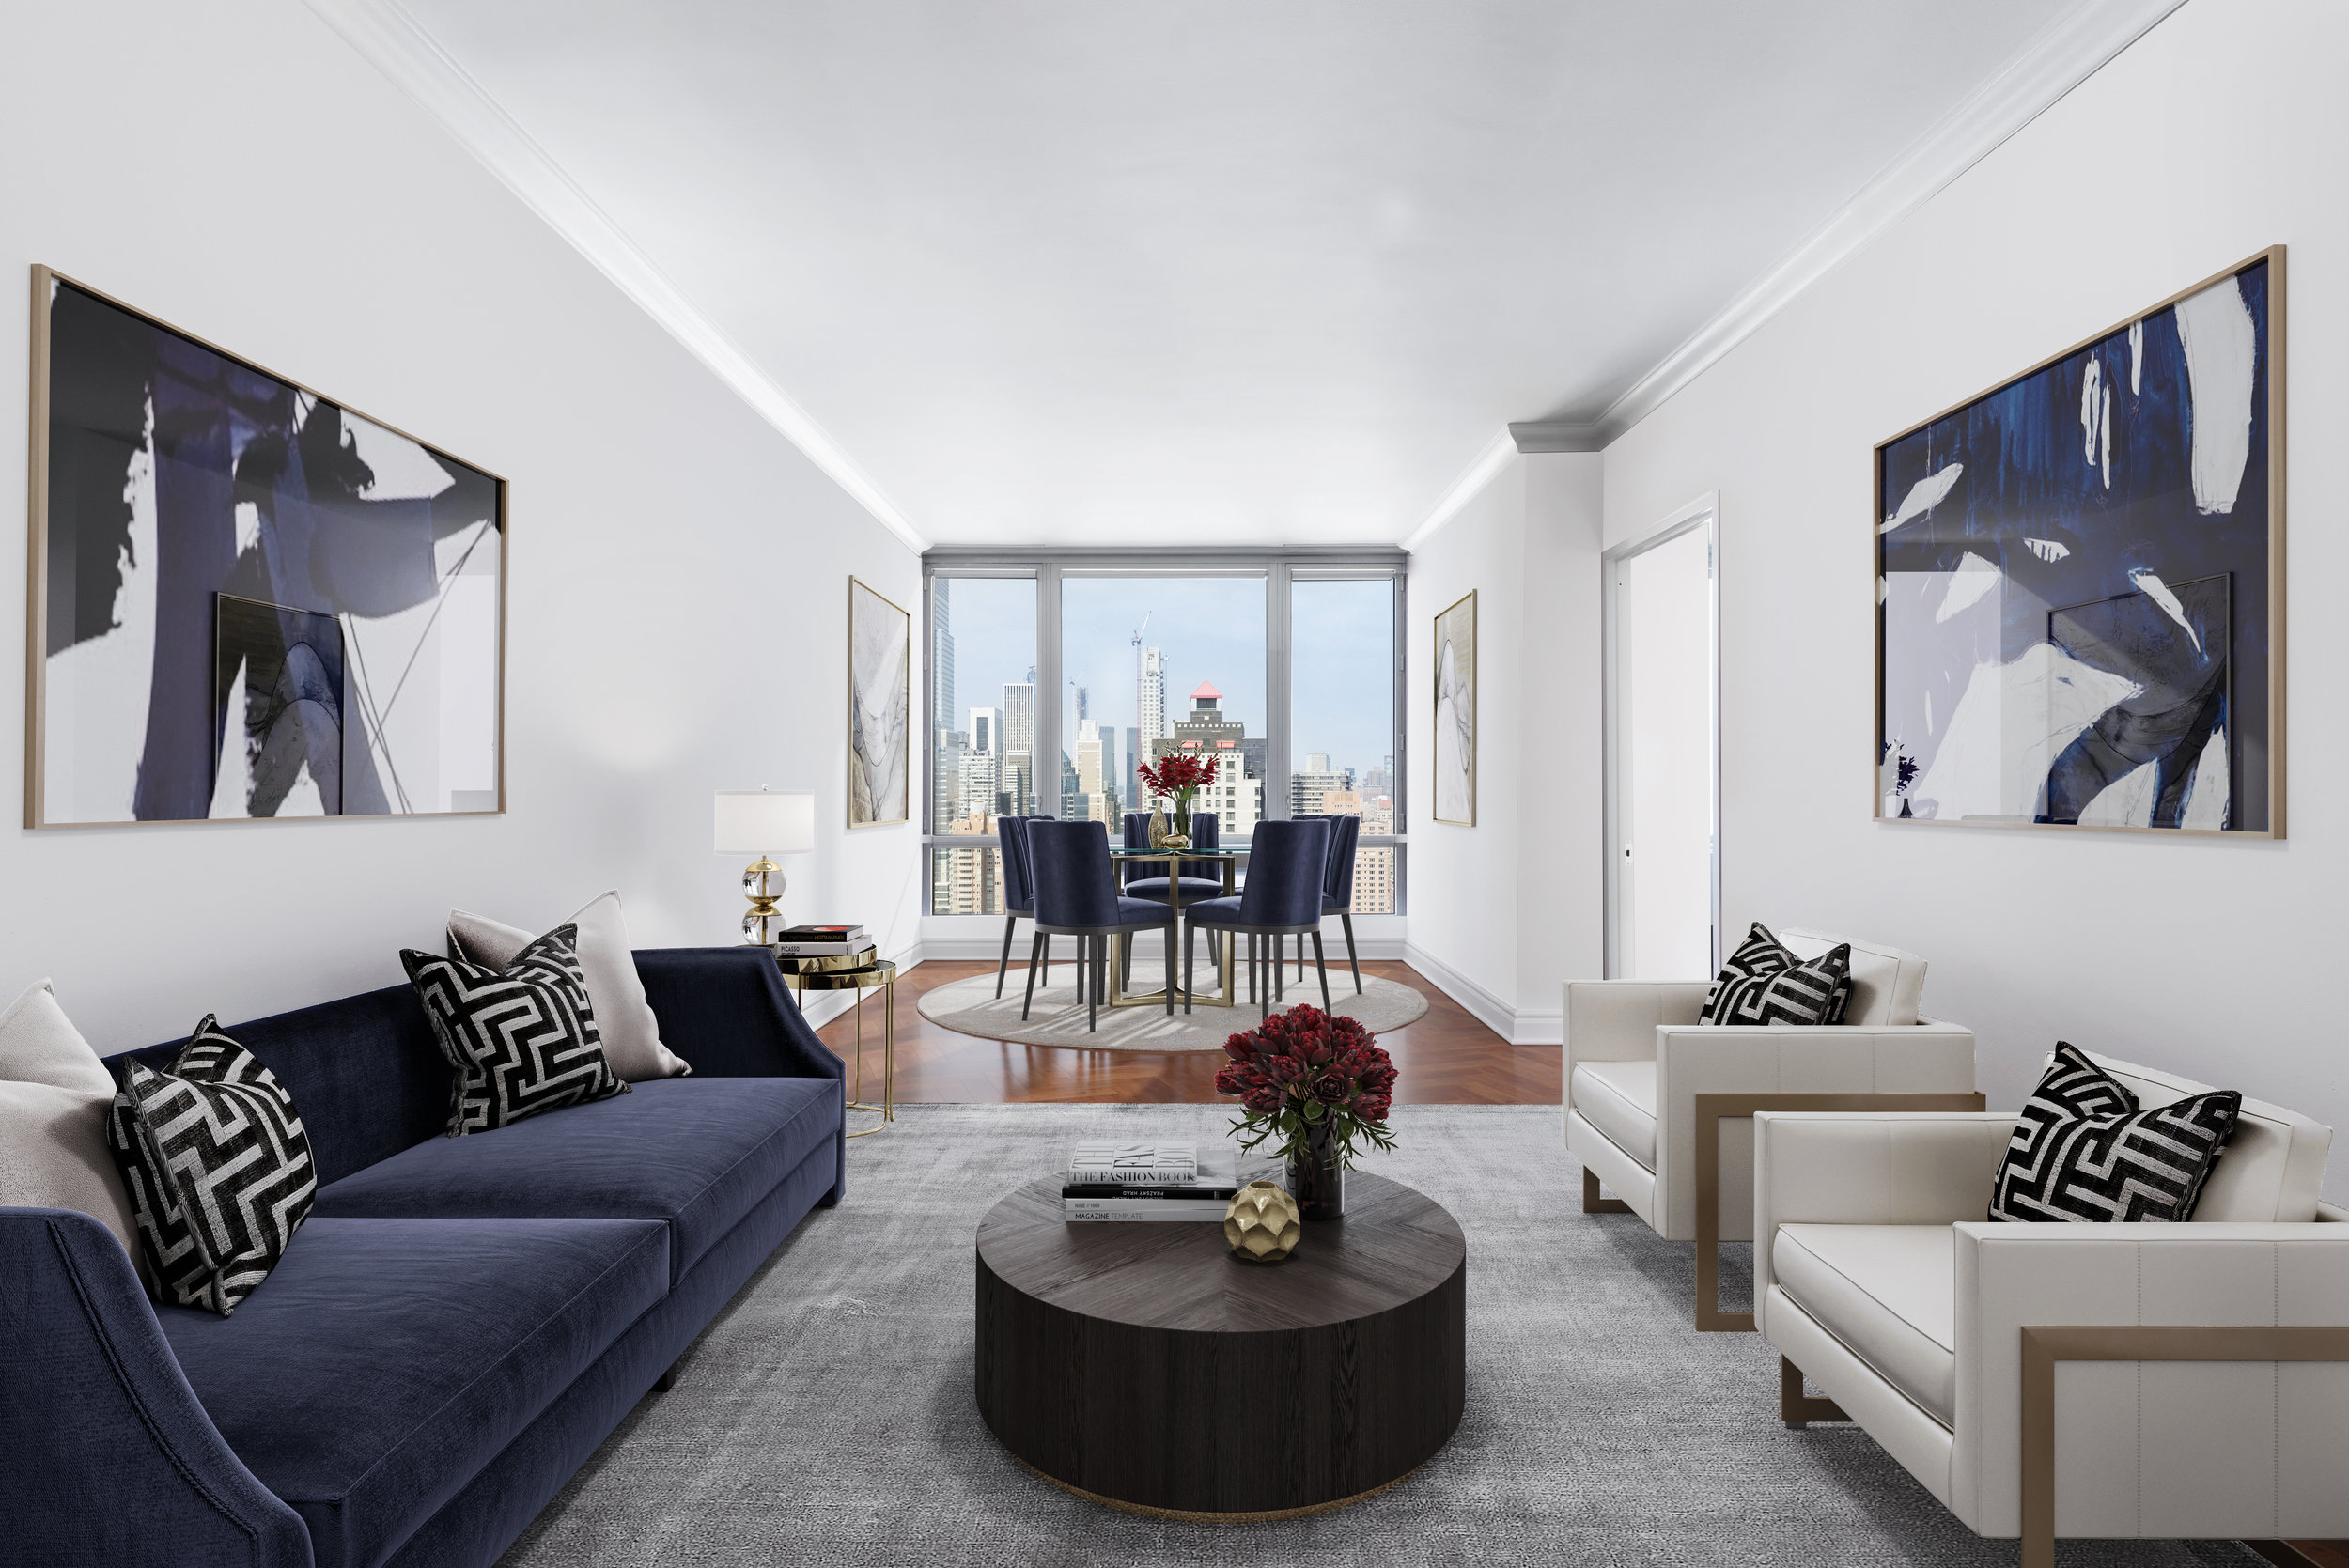 401 East 60th Street: 36B - $1,995,000 // 2 Beds // 2 Baths // 1,160 SQFTOverlooking Central Park with spectacular city skyline views from every room; 36B is a breathtaking residence featuring 10ft+ ceilings, floor-to-ceiling windows, & hardwood floors